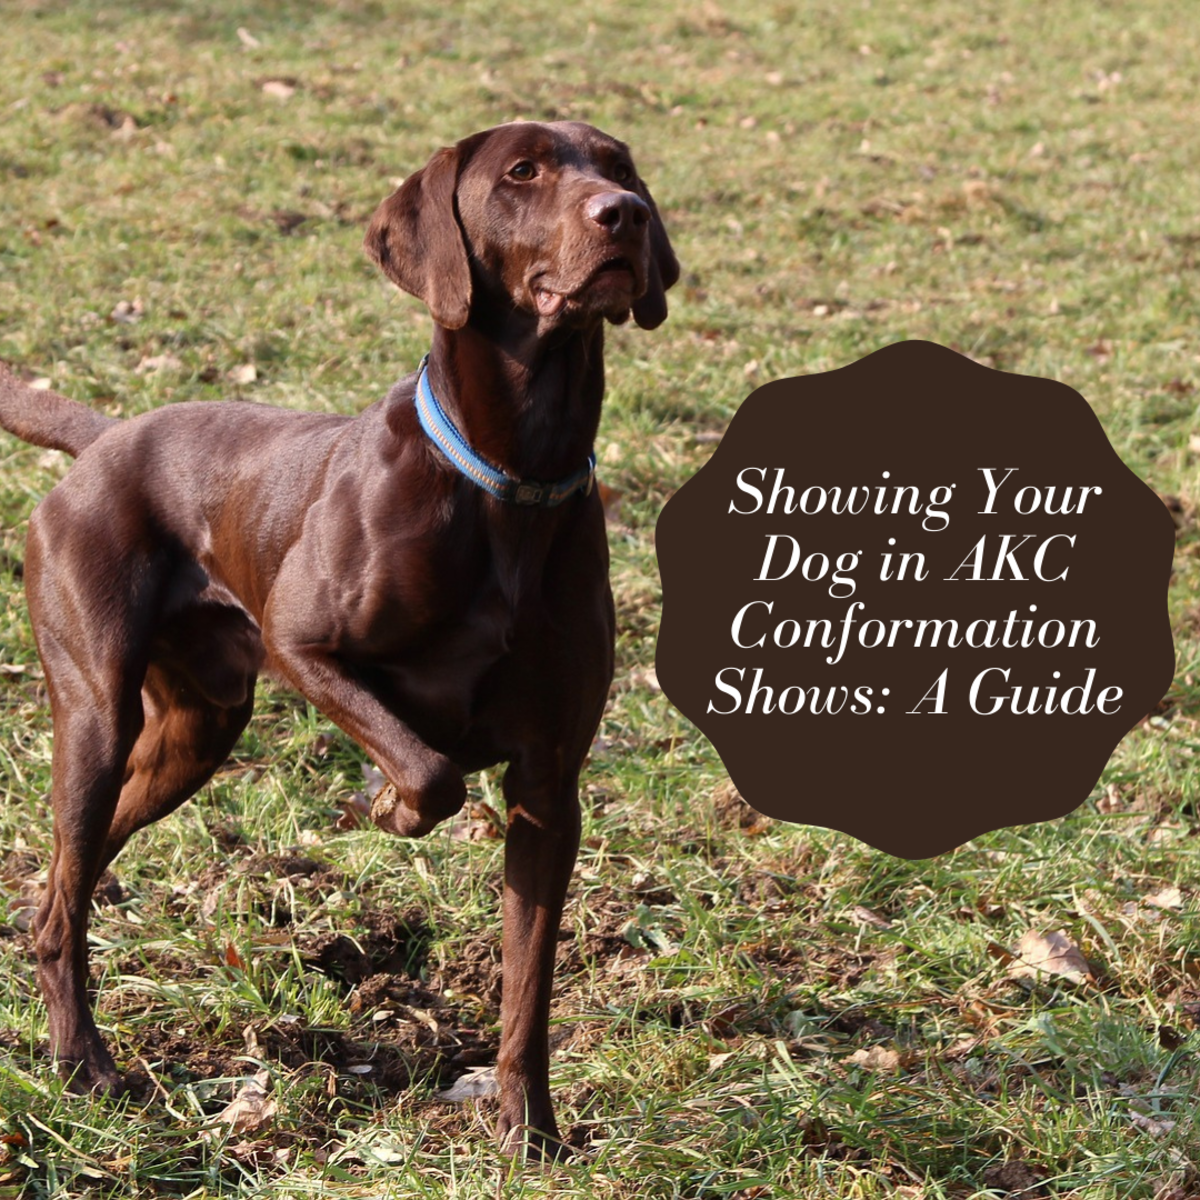 This guide will provide information about what it's like to show your dog in an AKC conformation show.